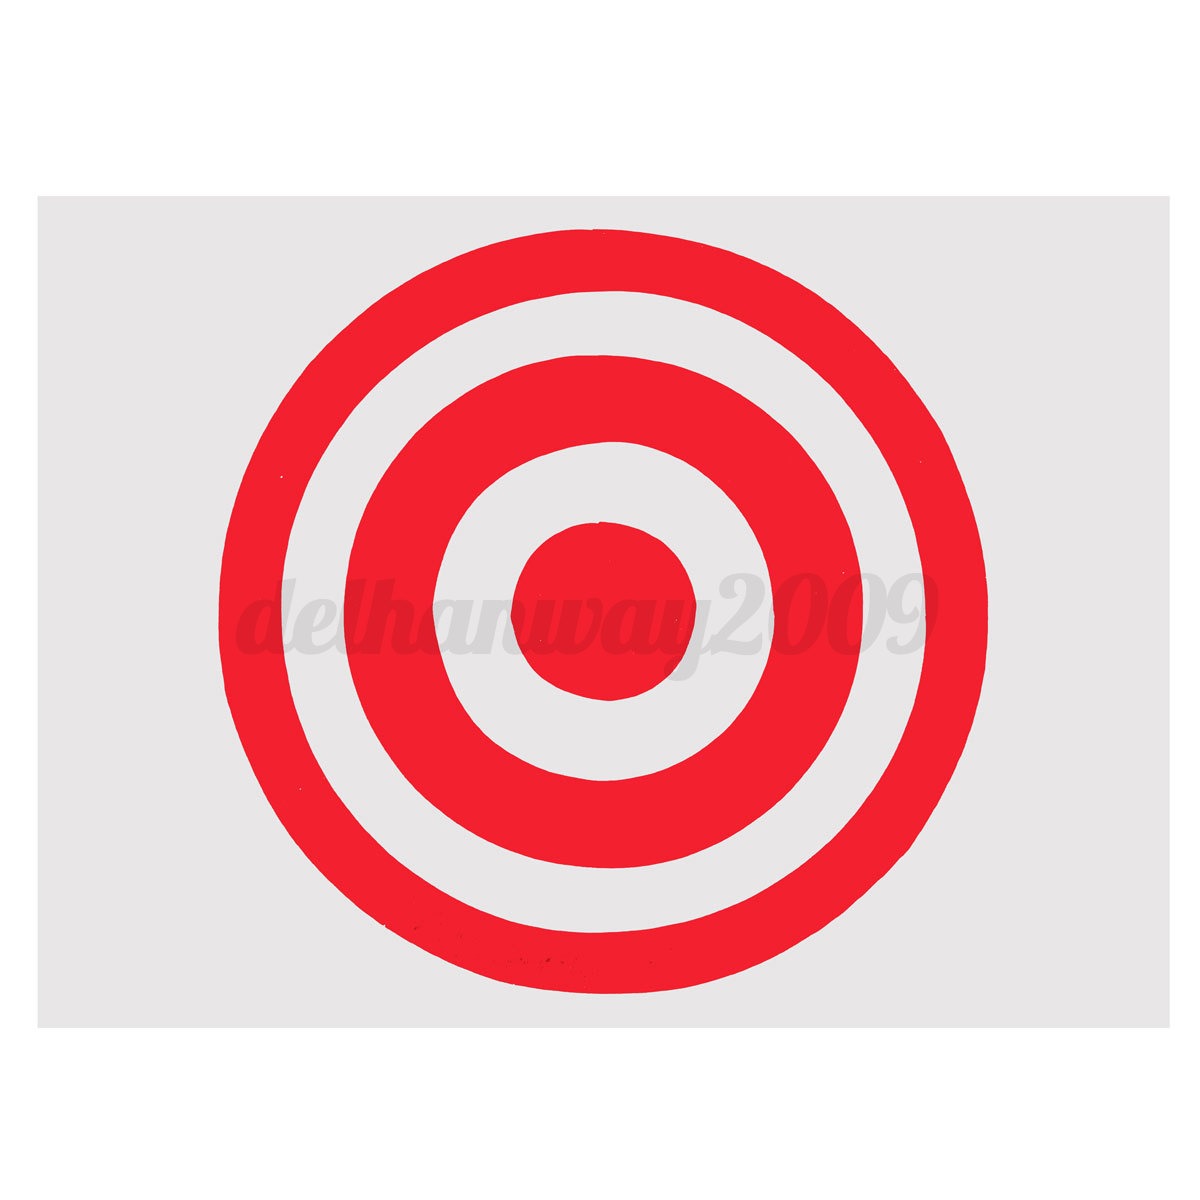 Wall Art Decals Target : Remarkable target wall stickers pictures designs dievoon